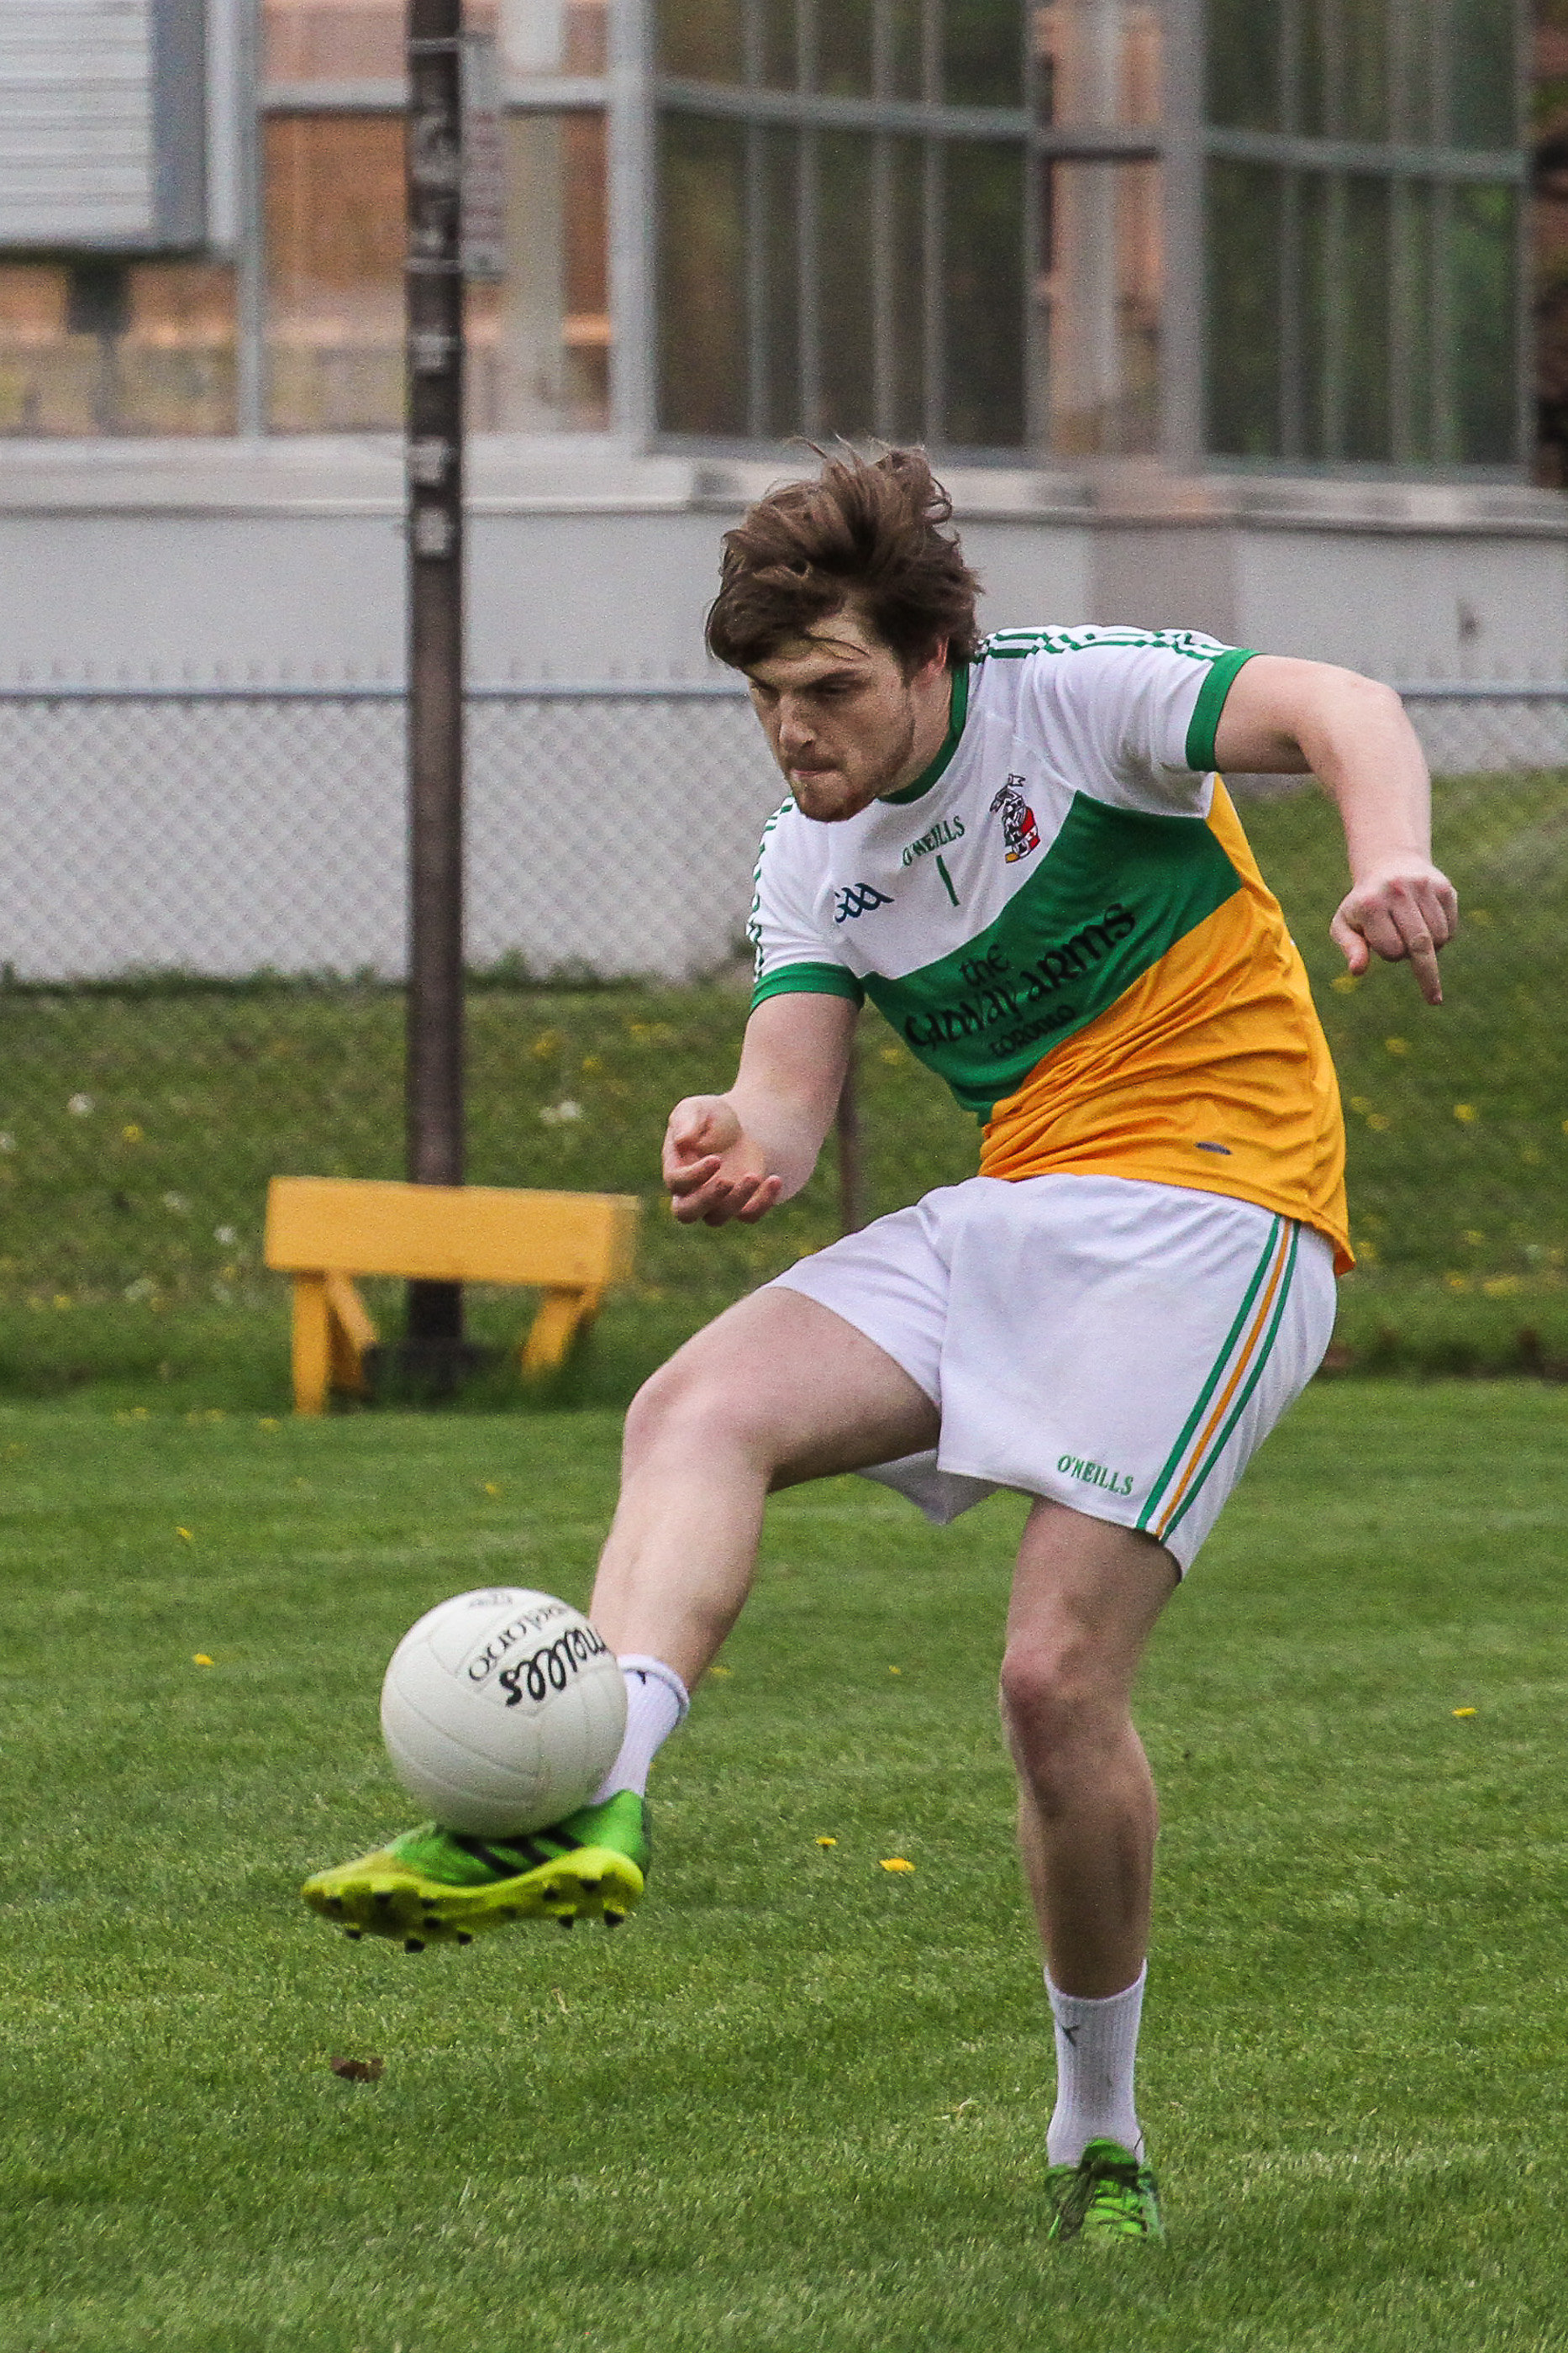 Toronto Gaels Gaelic Football Club - Montreal May Tournament 2015 - ShamrocksvsGaels(3of30).jpg